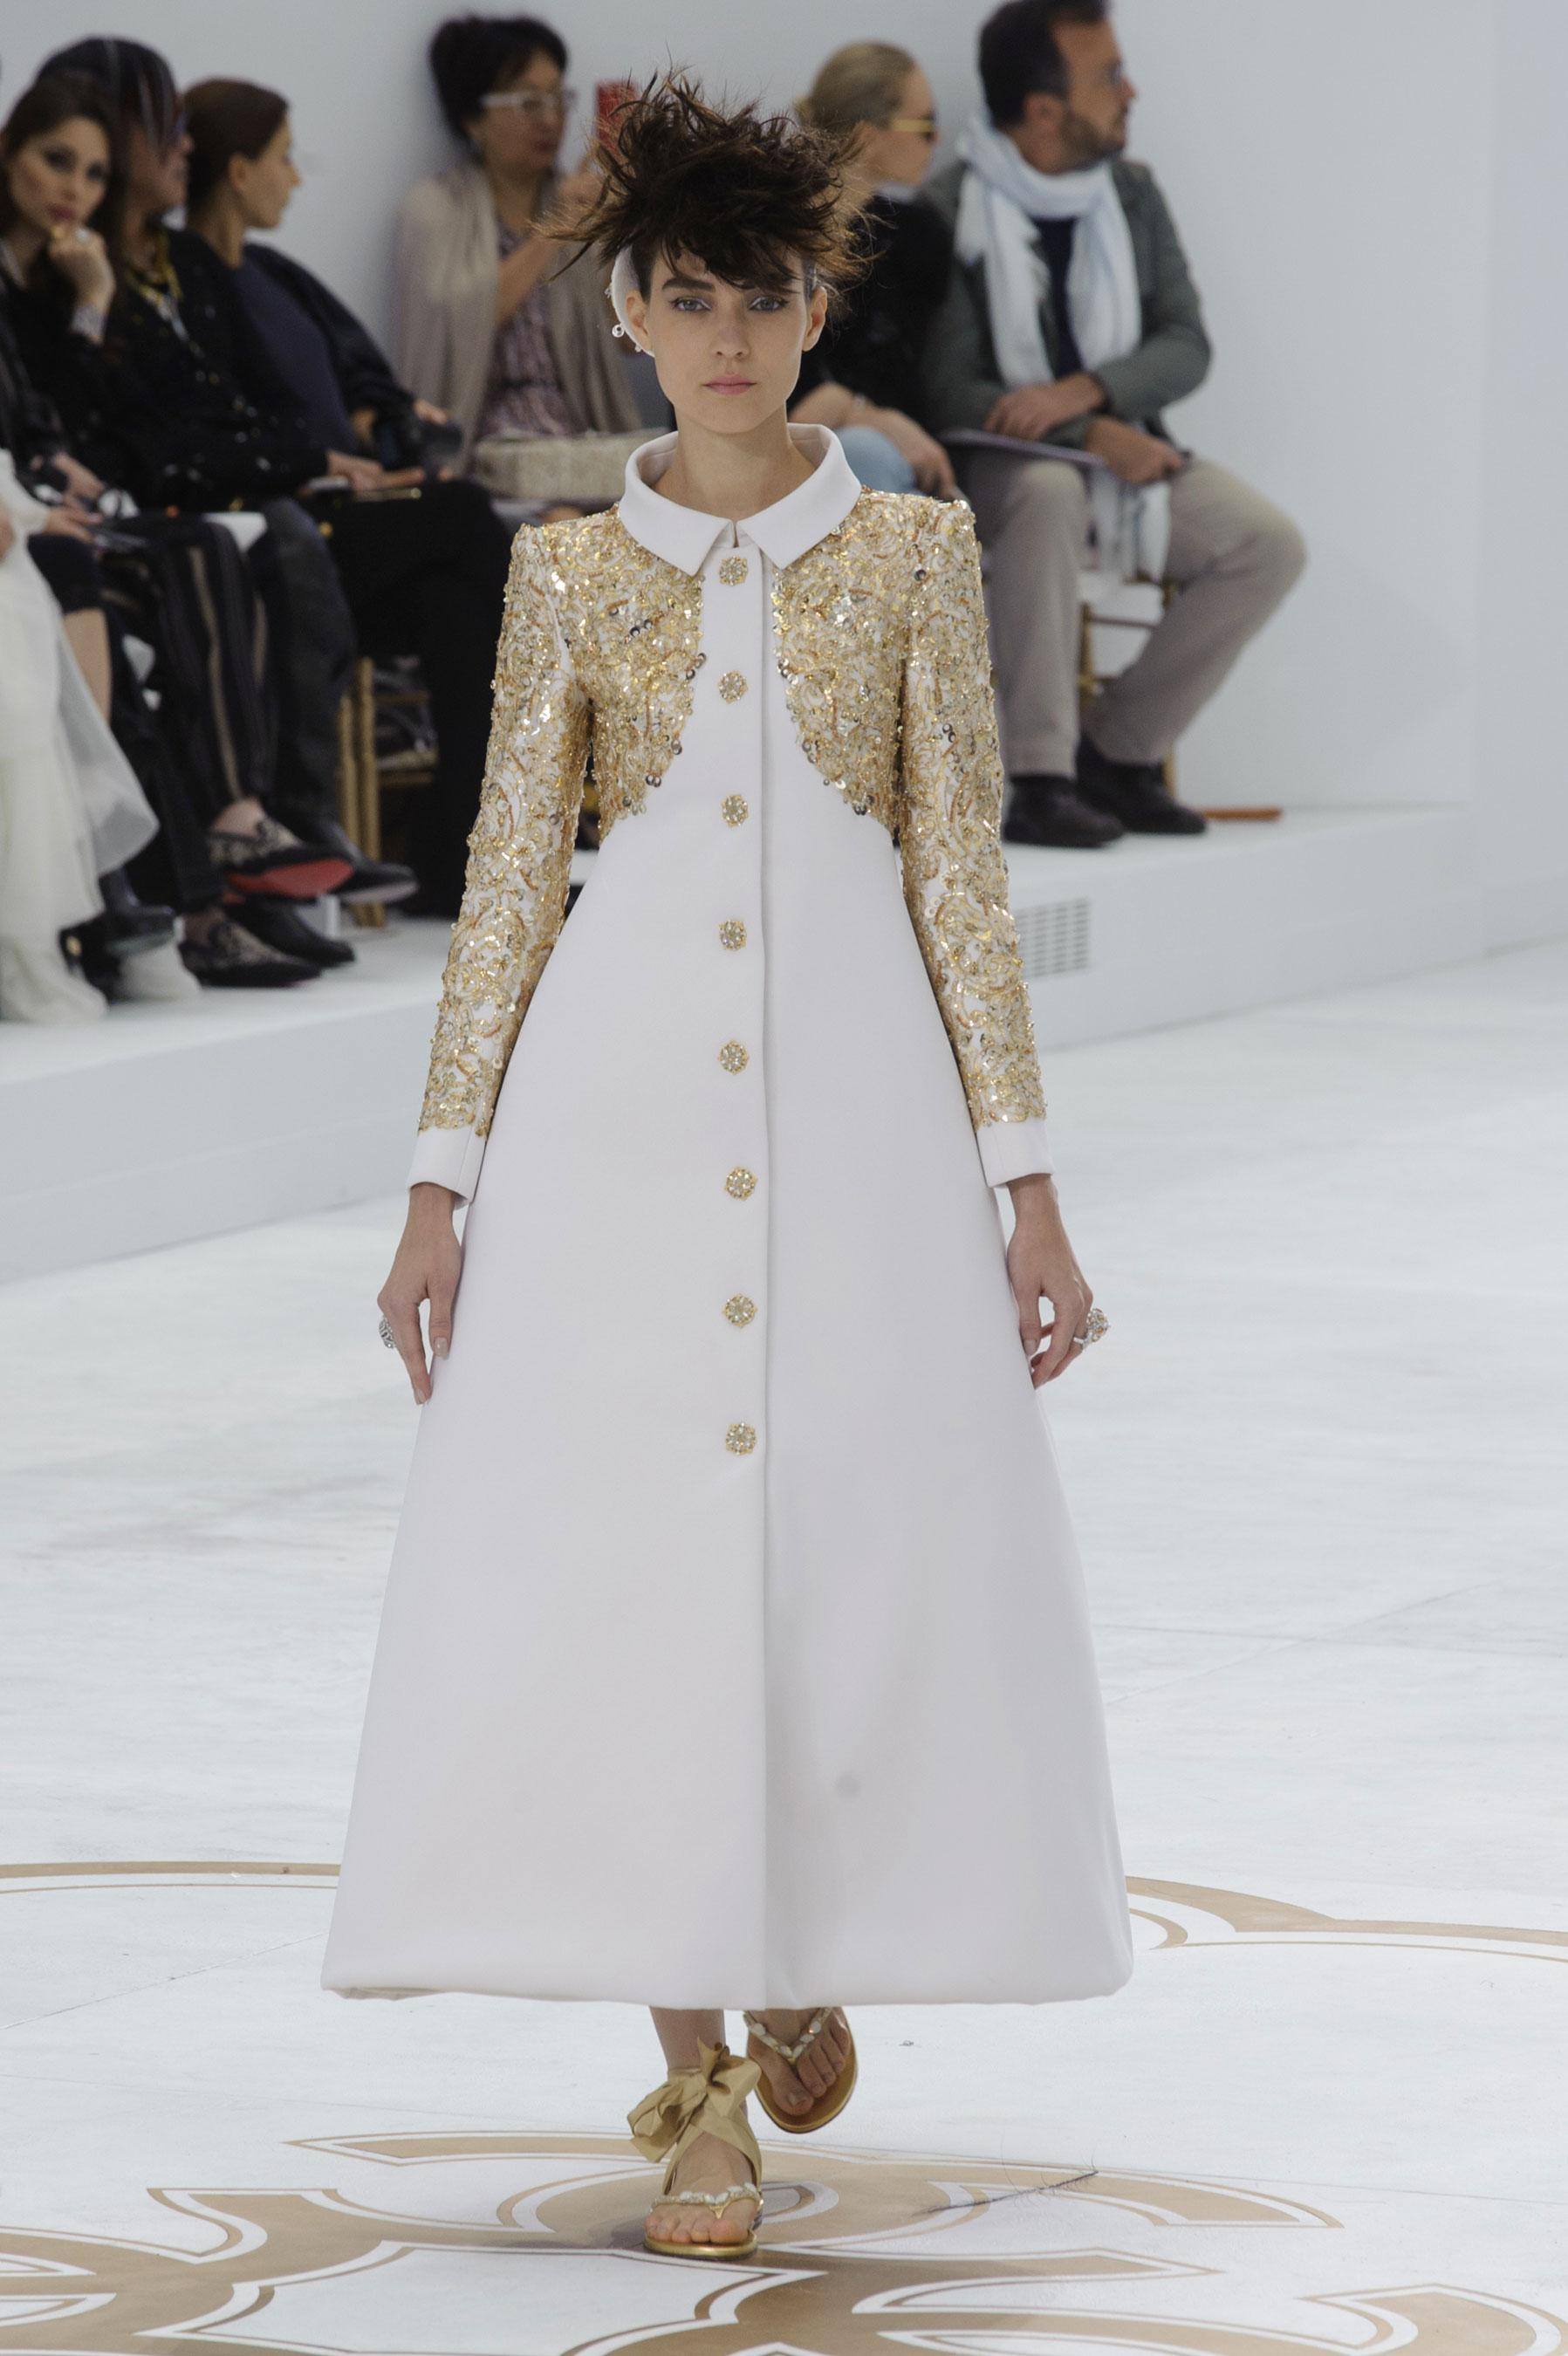 D fil chanel automne hiver 2014 2015 couture madame figaro for Chanel haute couture 2015